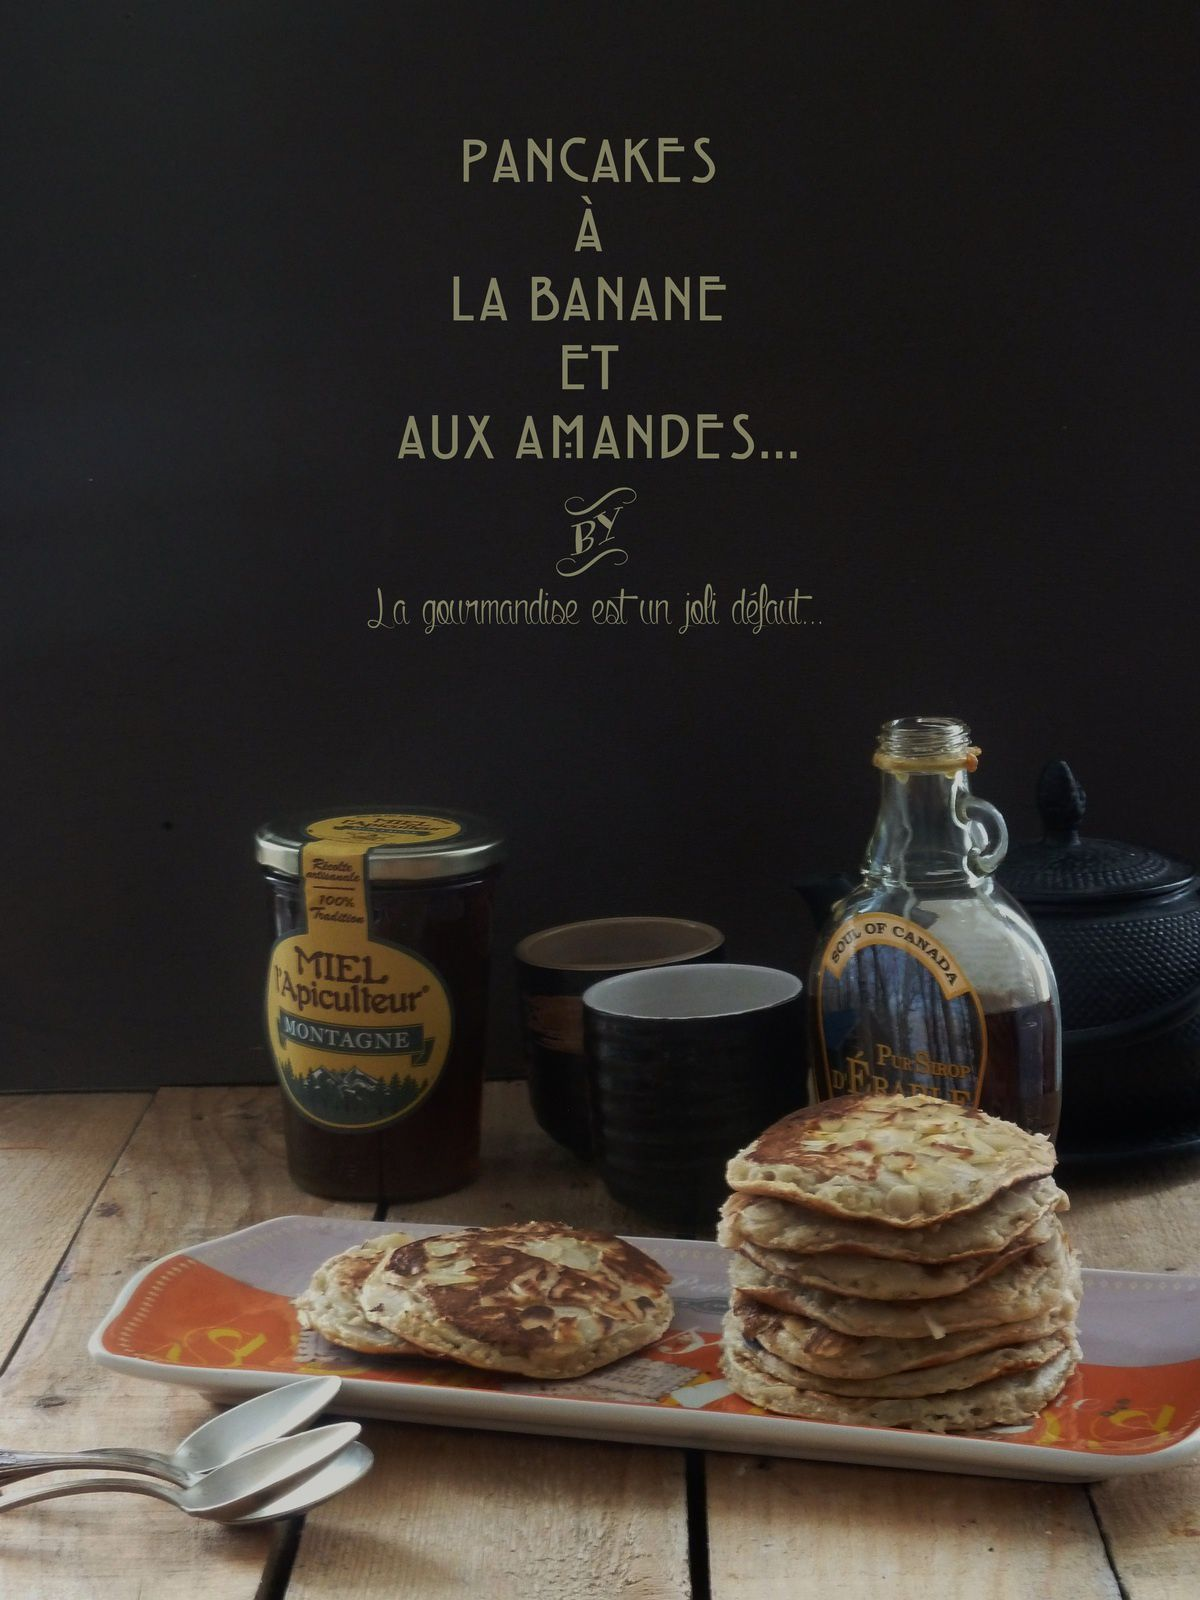 pancakes la banane et aux amandes sans oeufs mais avec. Black Bedroom Furniture Sets. Home Design Ideas